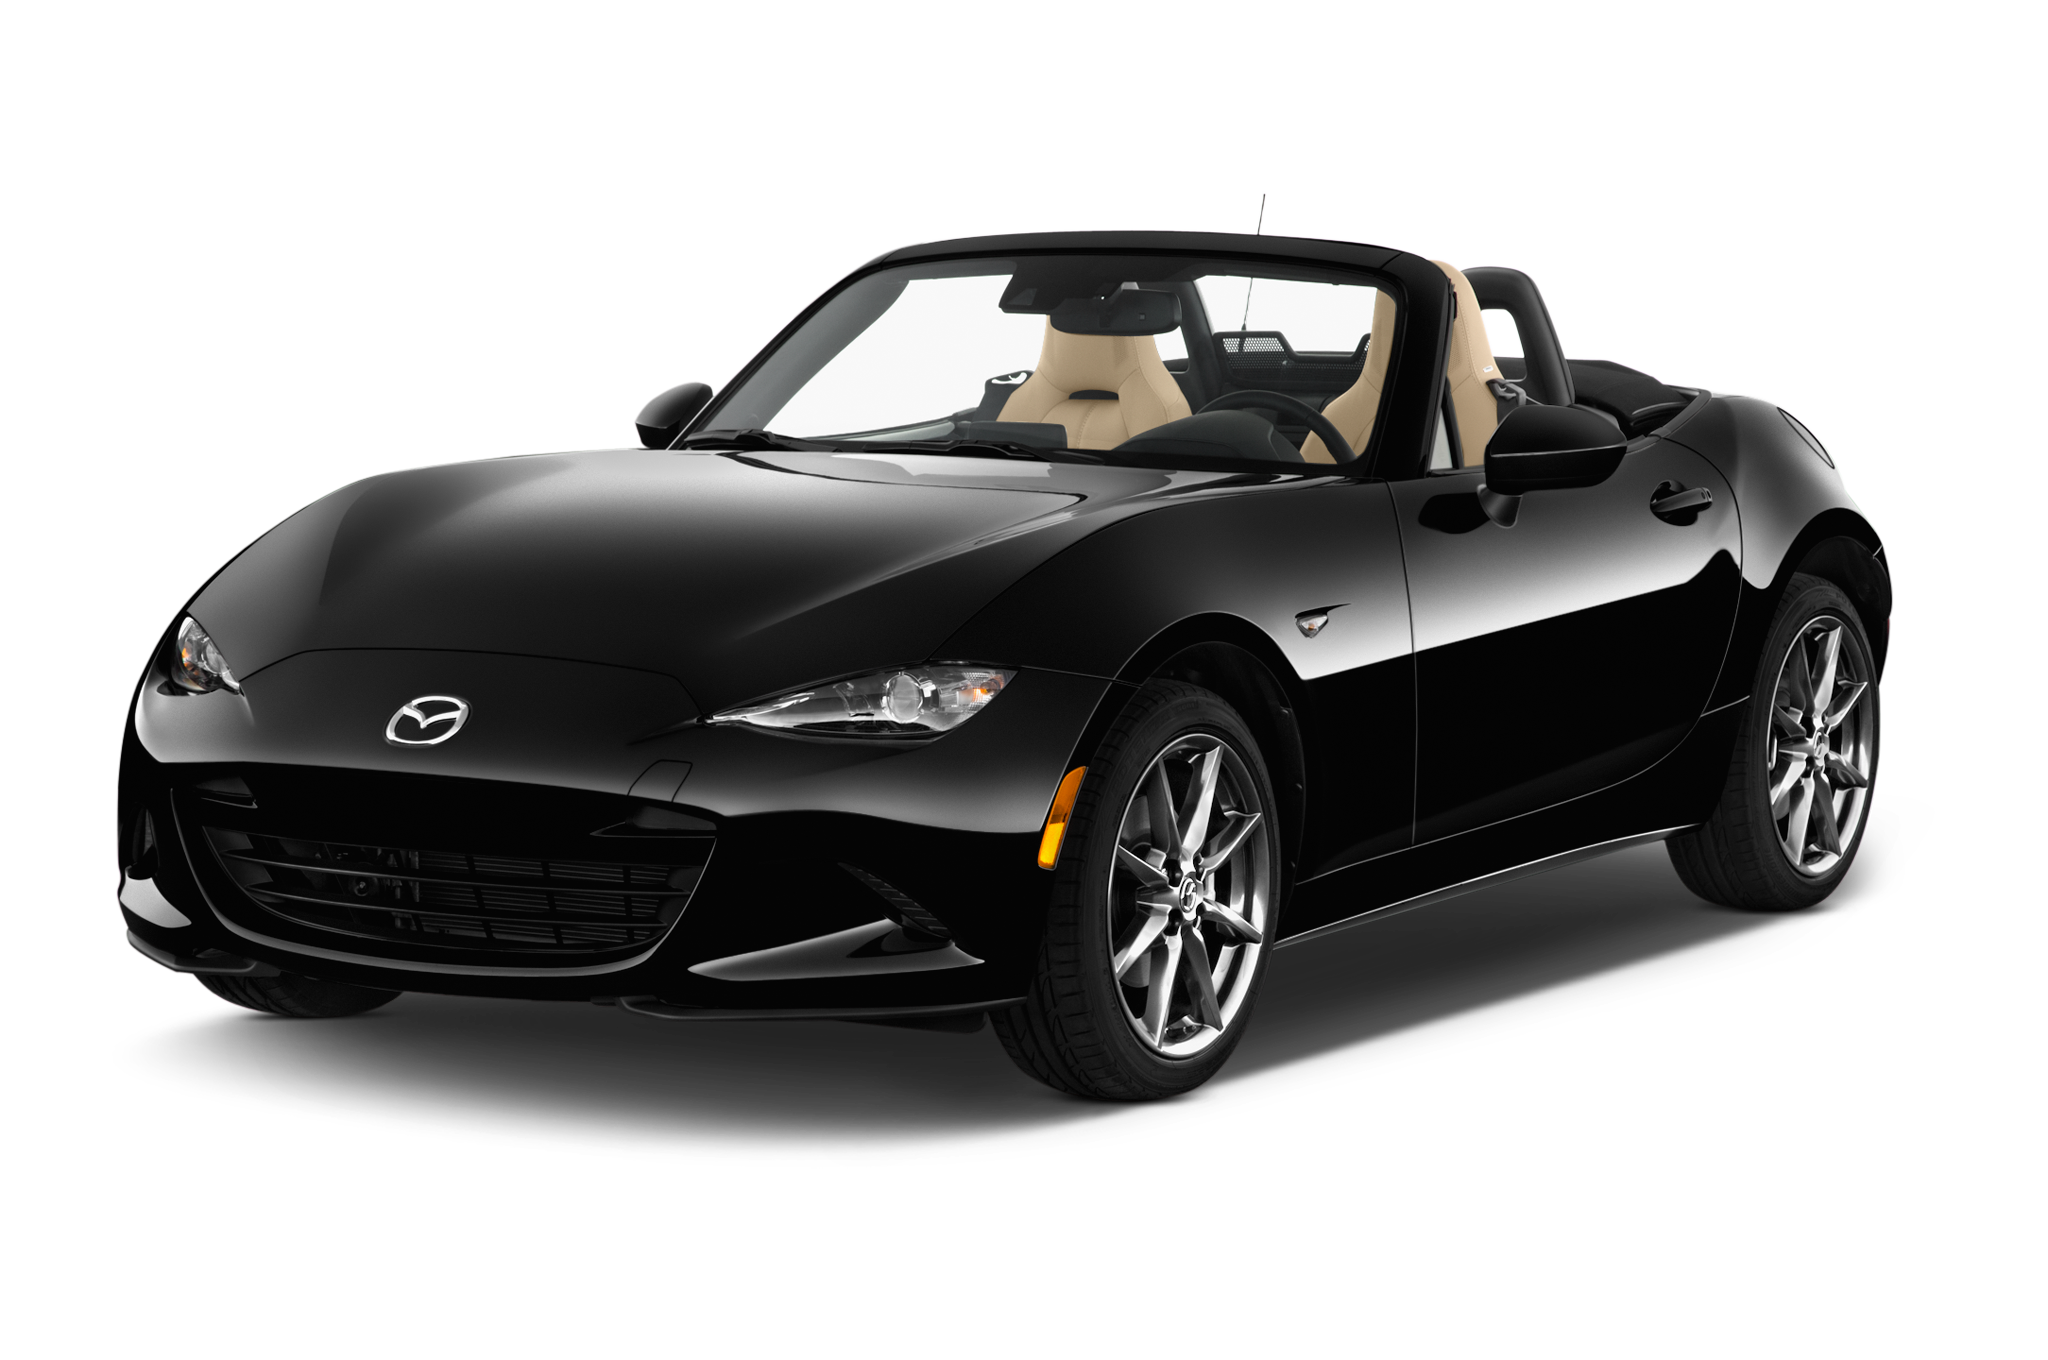 2016 mazda mx 5 miata full pricing announced. Black Bedroom Furniture Sets. Home Design Ideas